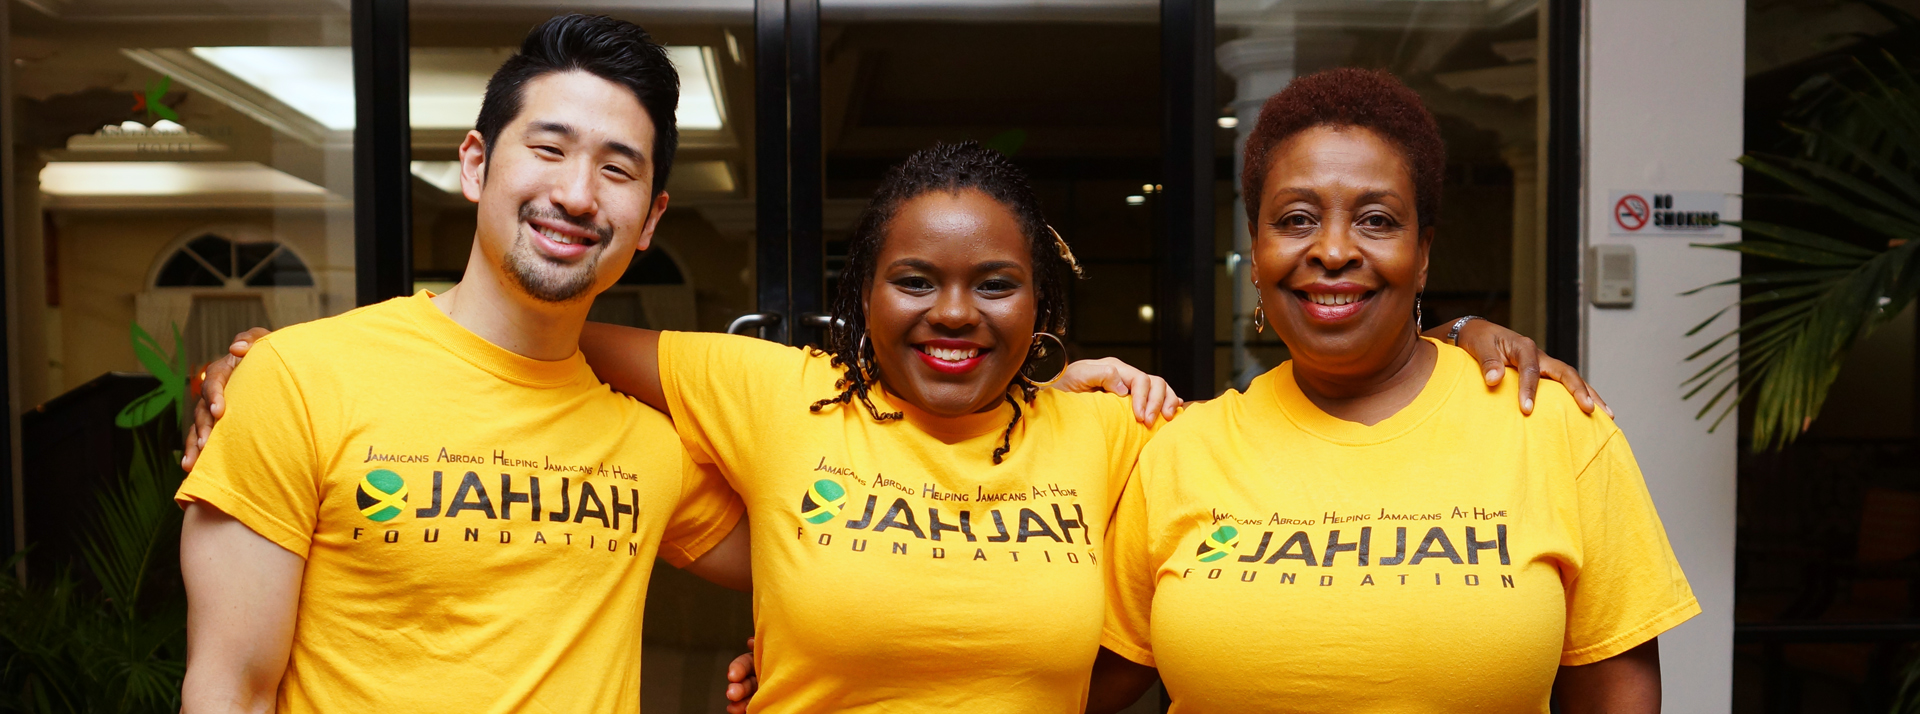 Jamaicans Abroad And Friends Of Jamaica Working Together For A Better Jamaica